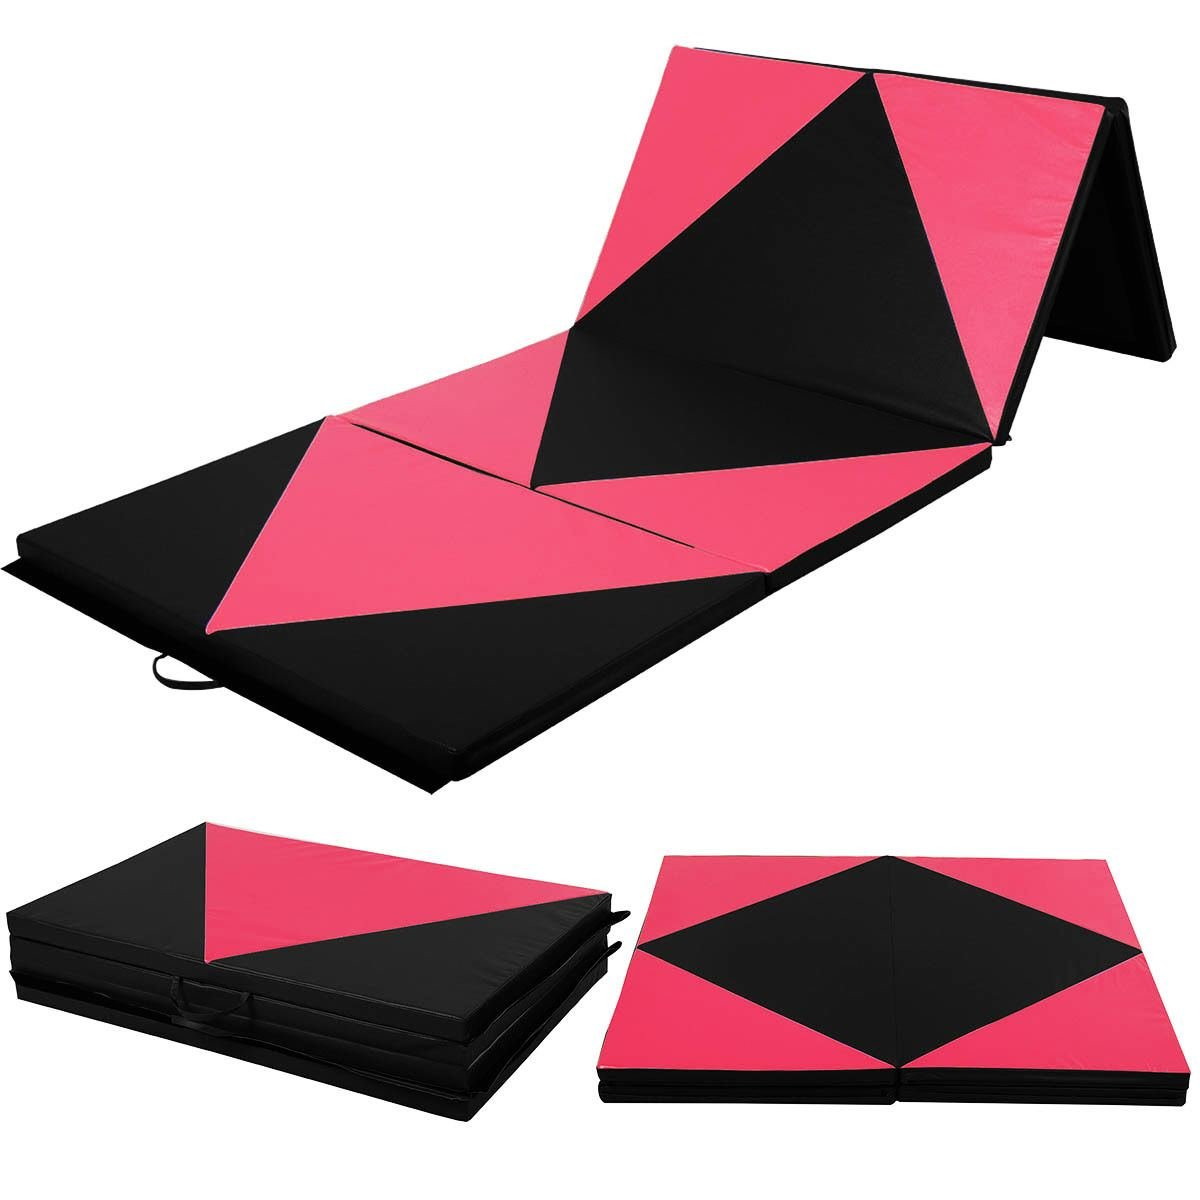 Folding Panel Gymnastics Mat 4'x10'x2'' Thick Gym Fitness Exercise Pink/Black New by Exercise Mats